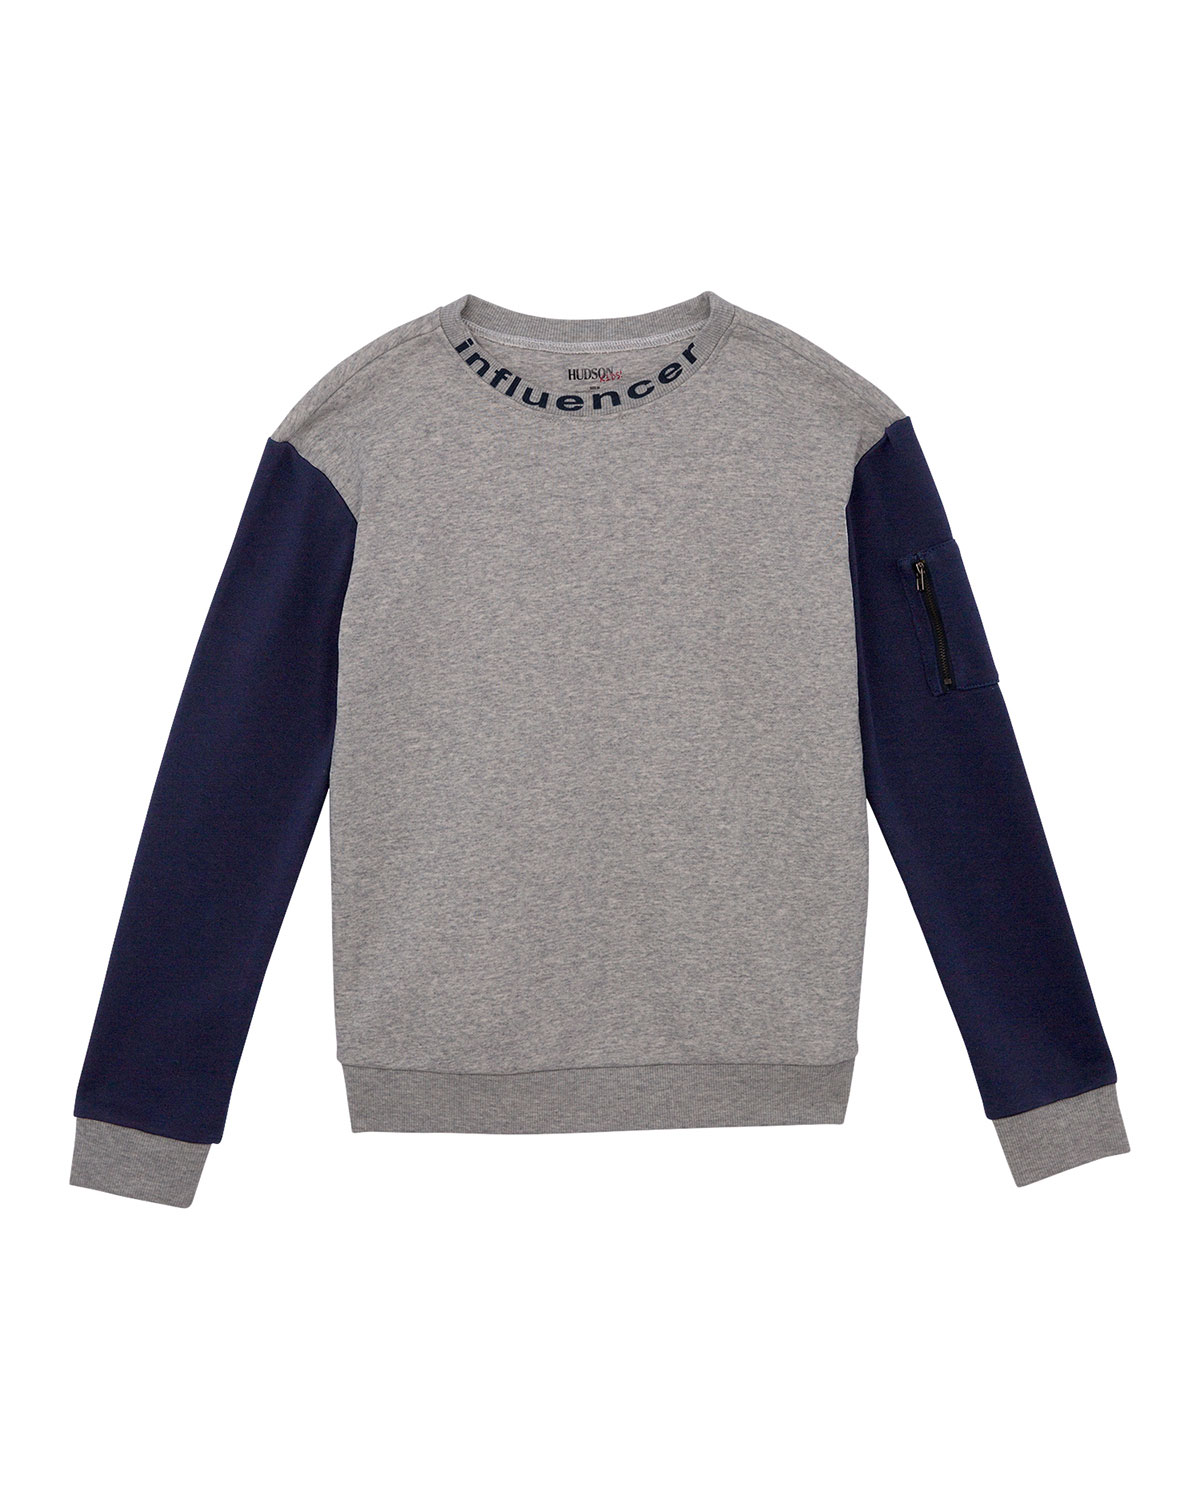 Hudson Tops BOYS' FRENCH TERRY CREWNECK SWEATSHIRT